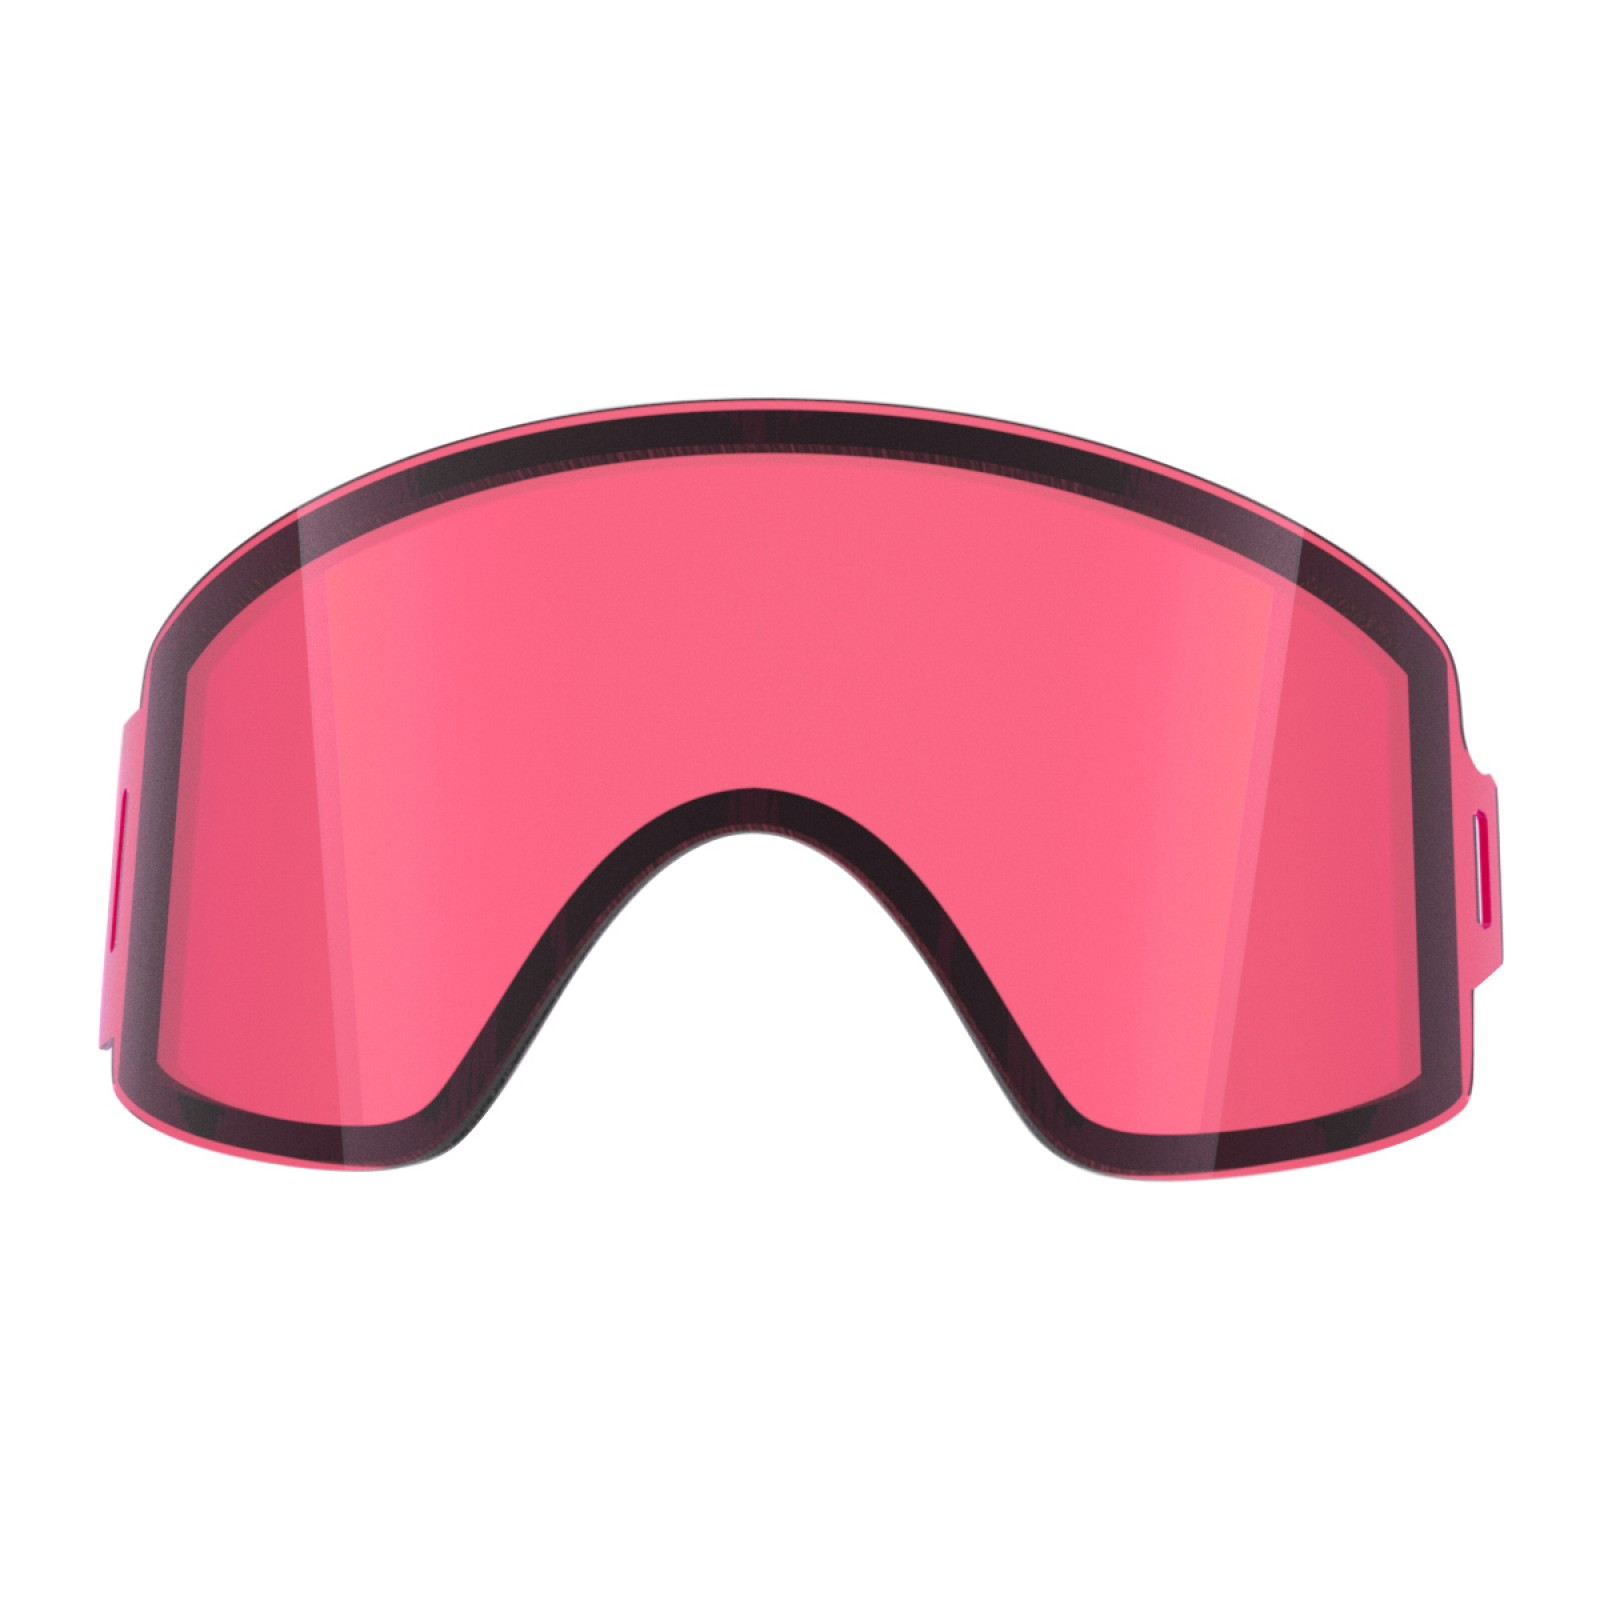 Storm lens for  Shift goggle